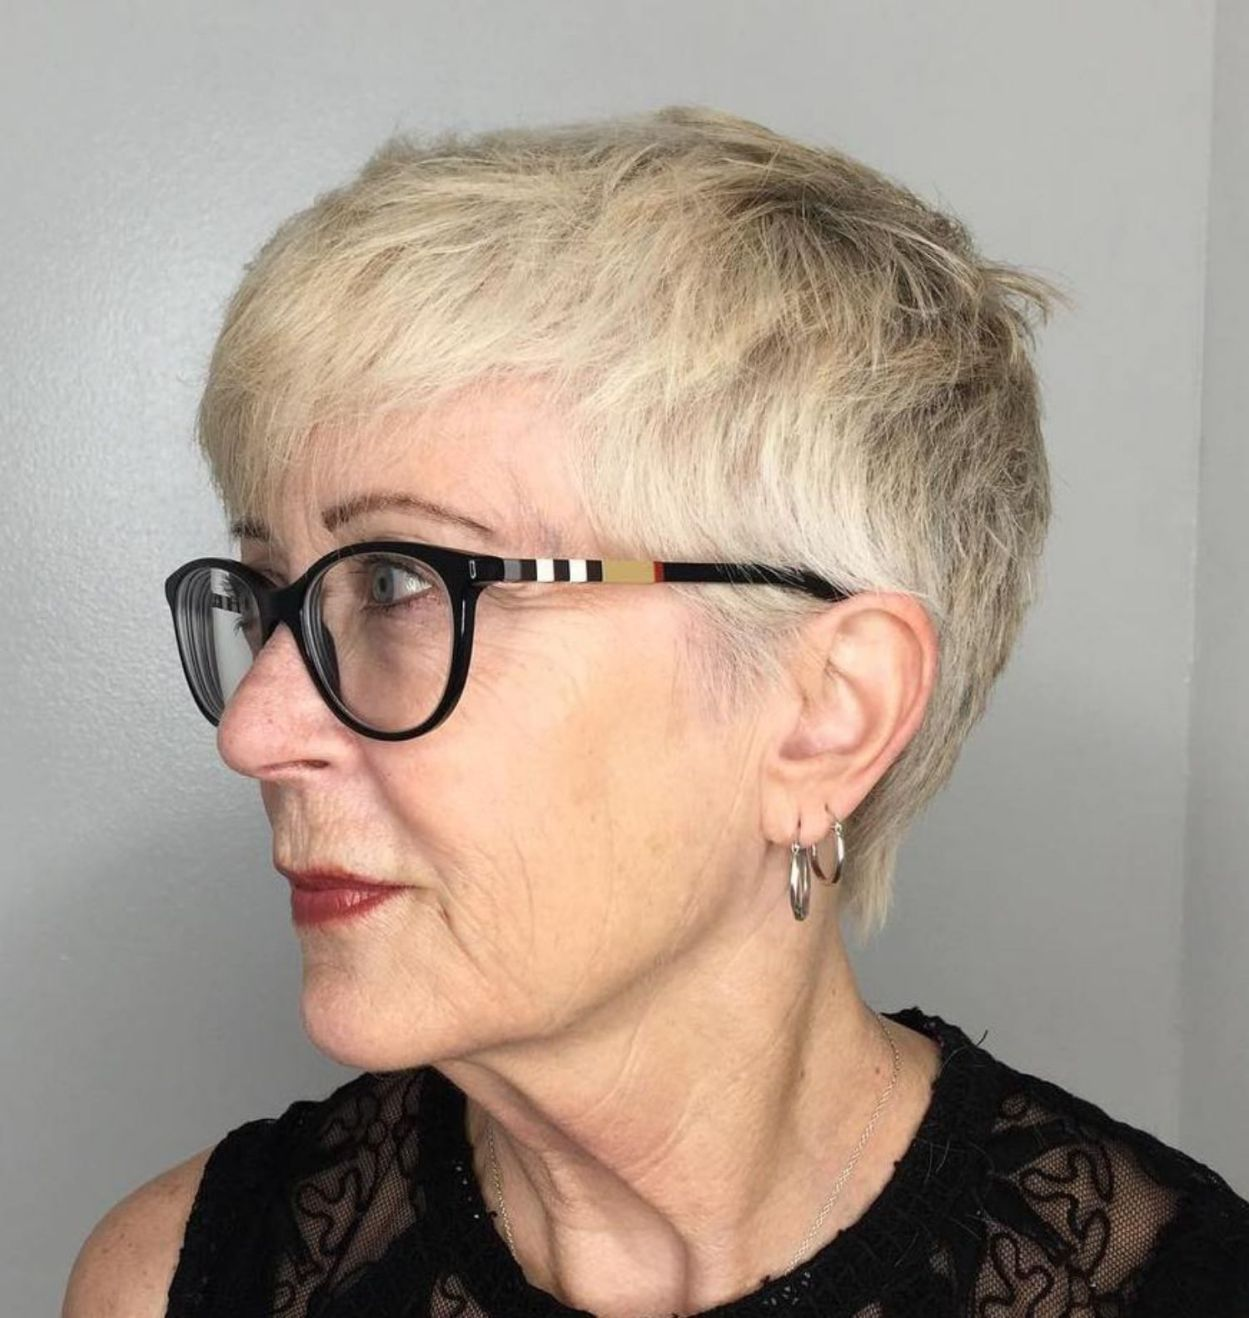 100 Short Haircut Styles for Over 60 Women in 2021 ab0d02530a45cd71130b32de696af11d